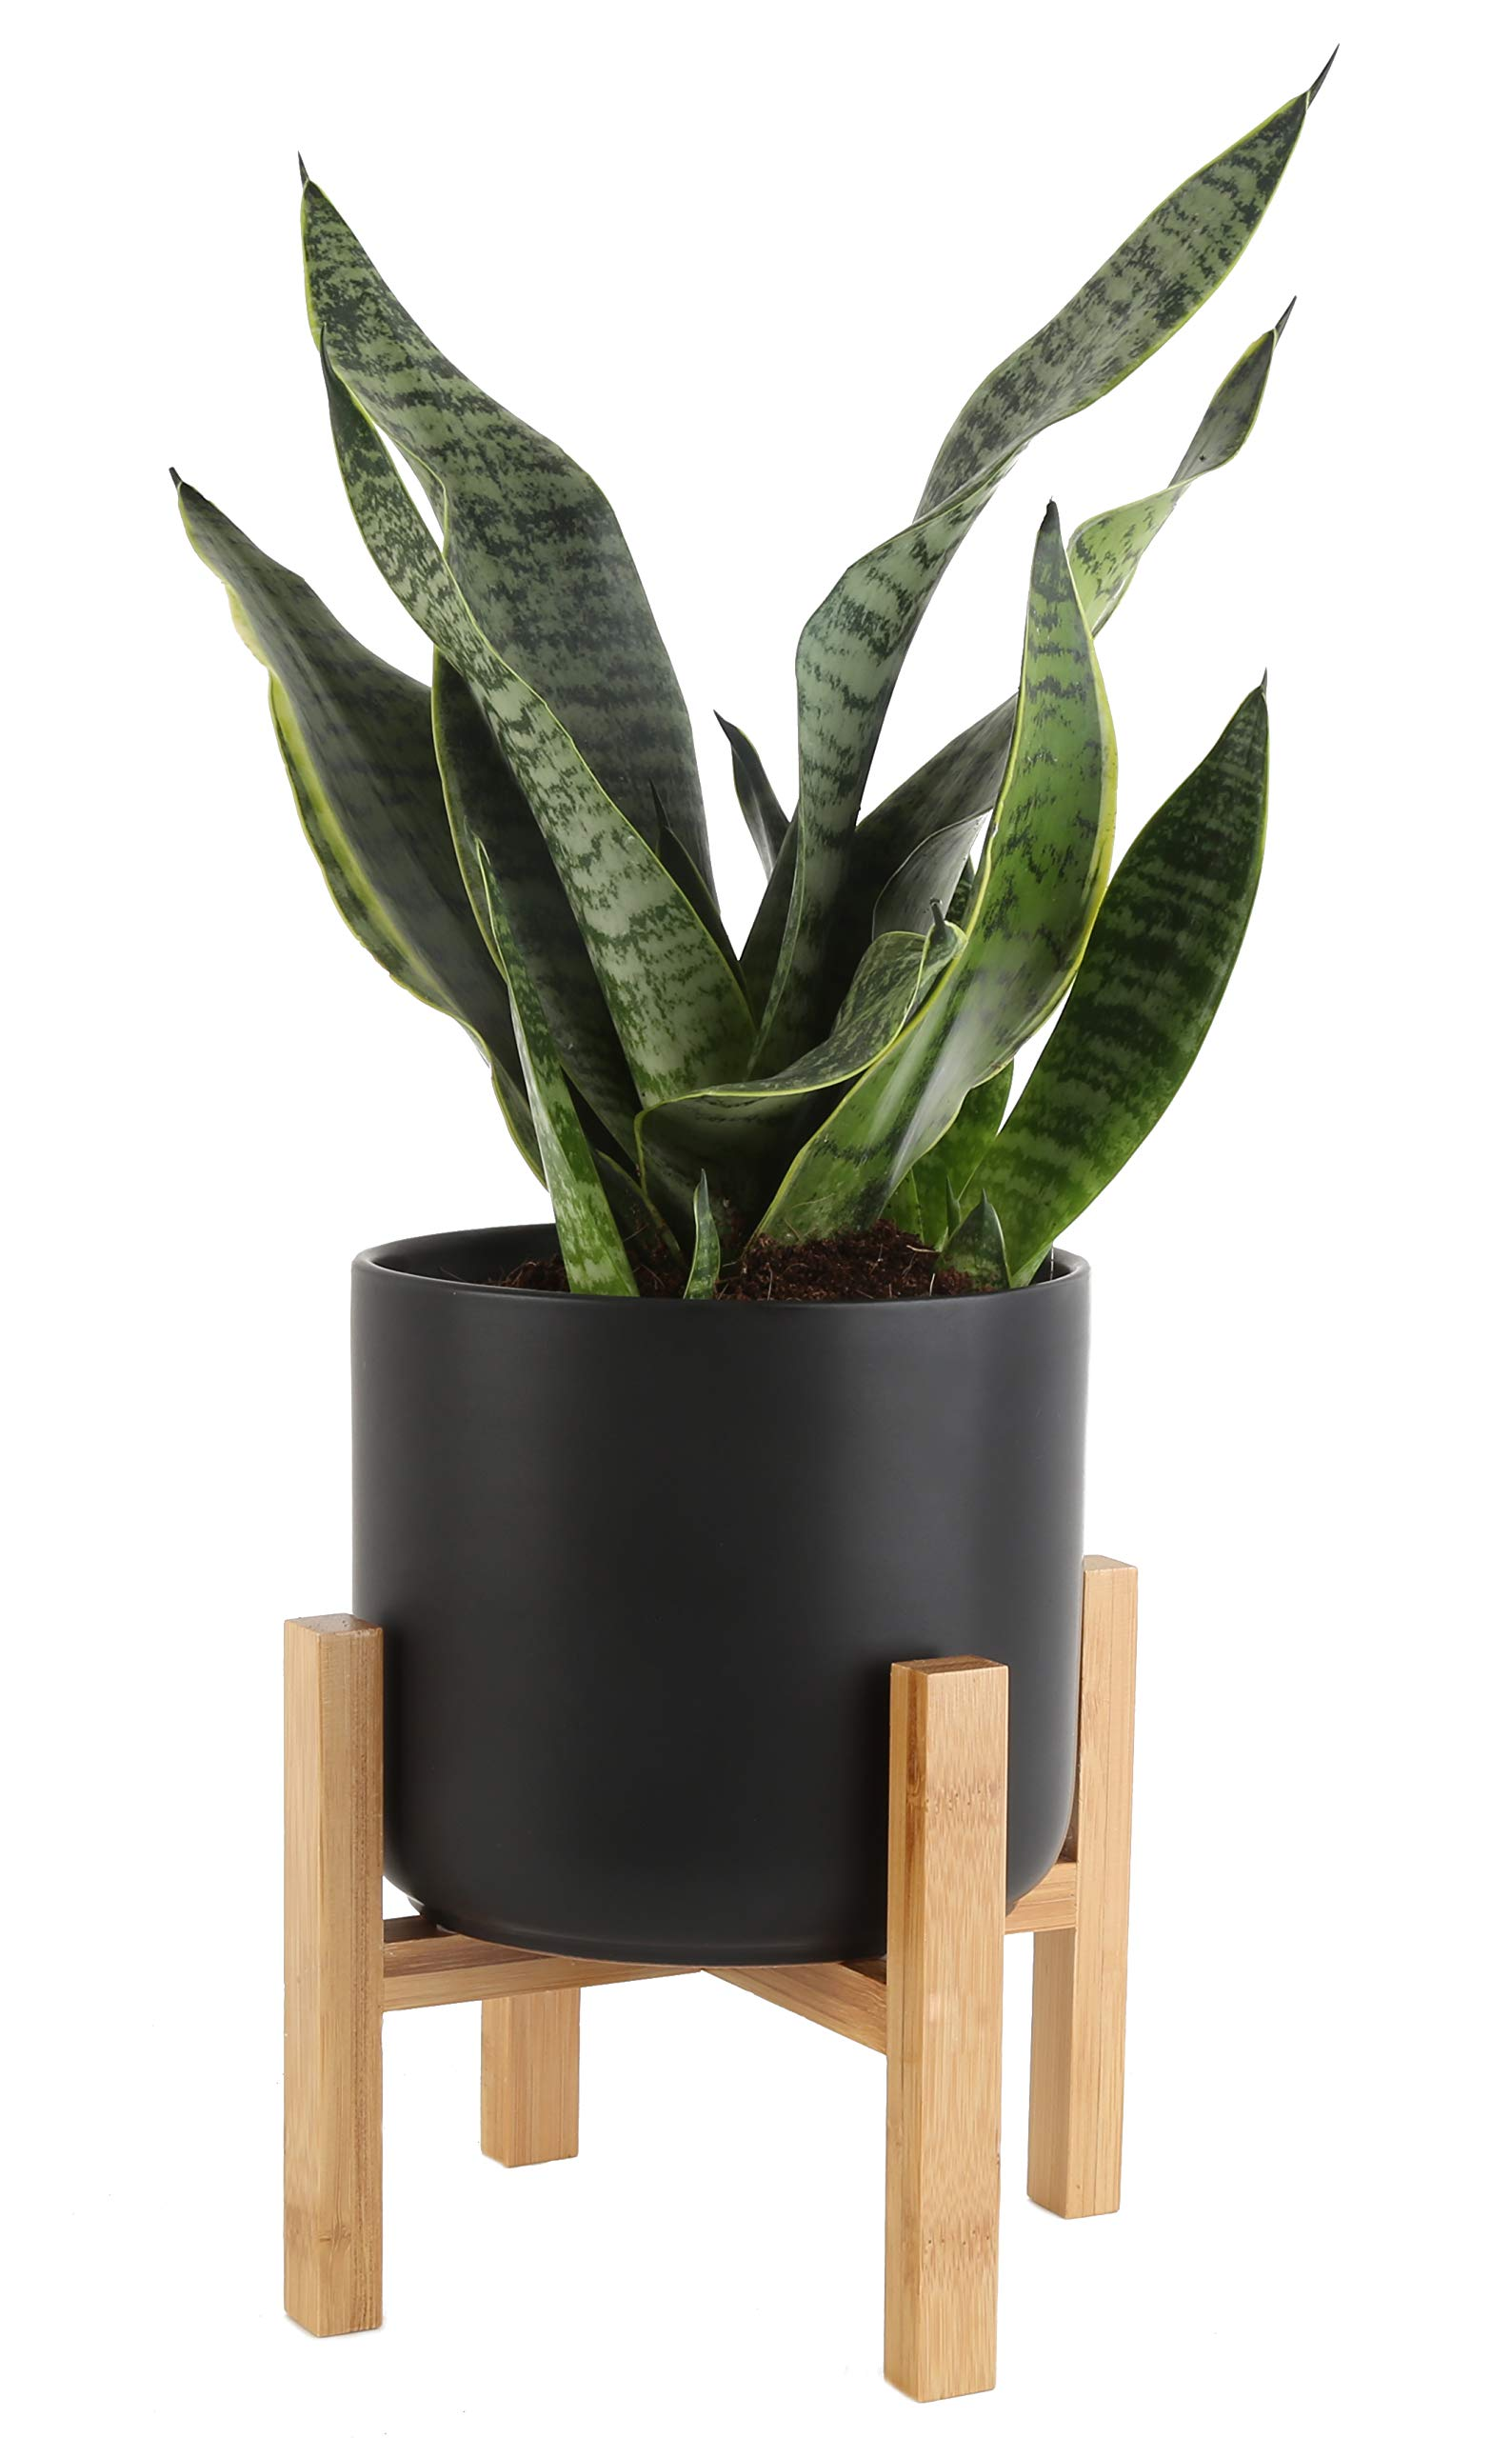 Costa Farms Snake Plant, Sansevieria, with 6.5-inch Wide Mid-Century Modern Planter and Plant Stand Set, Black, Fits on Floor/Tabletops by Costa Farms